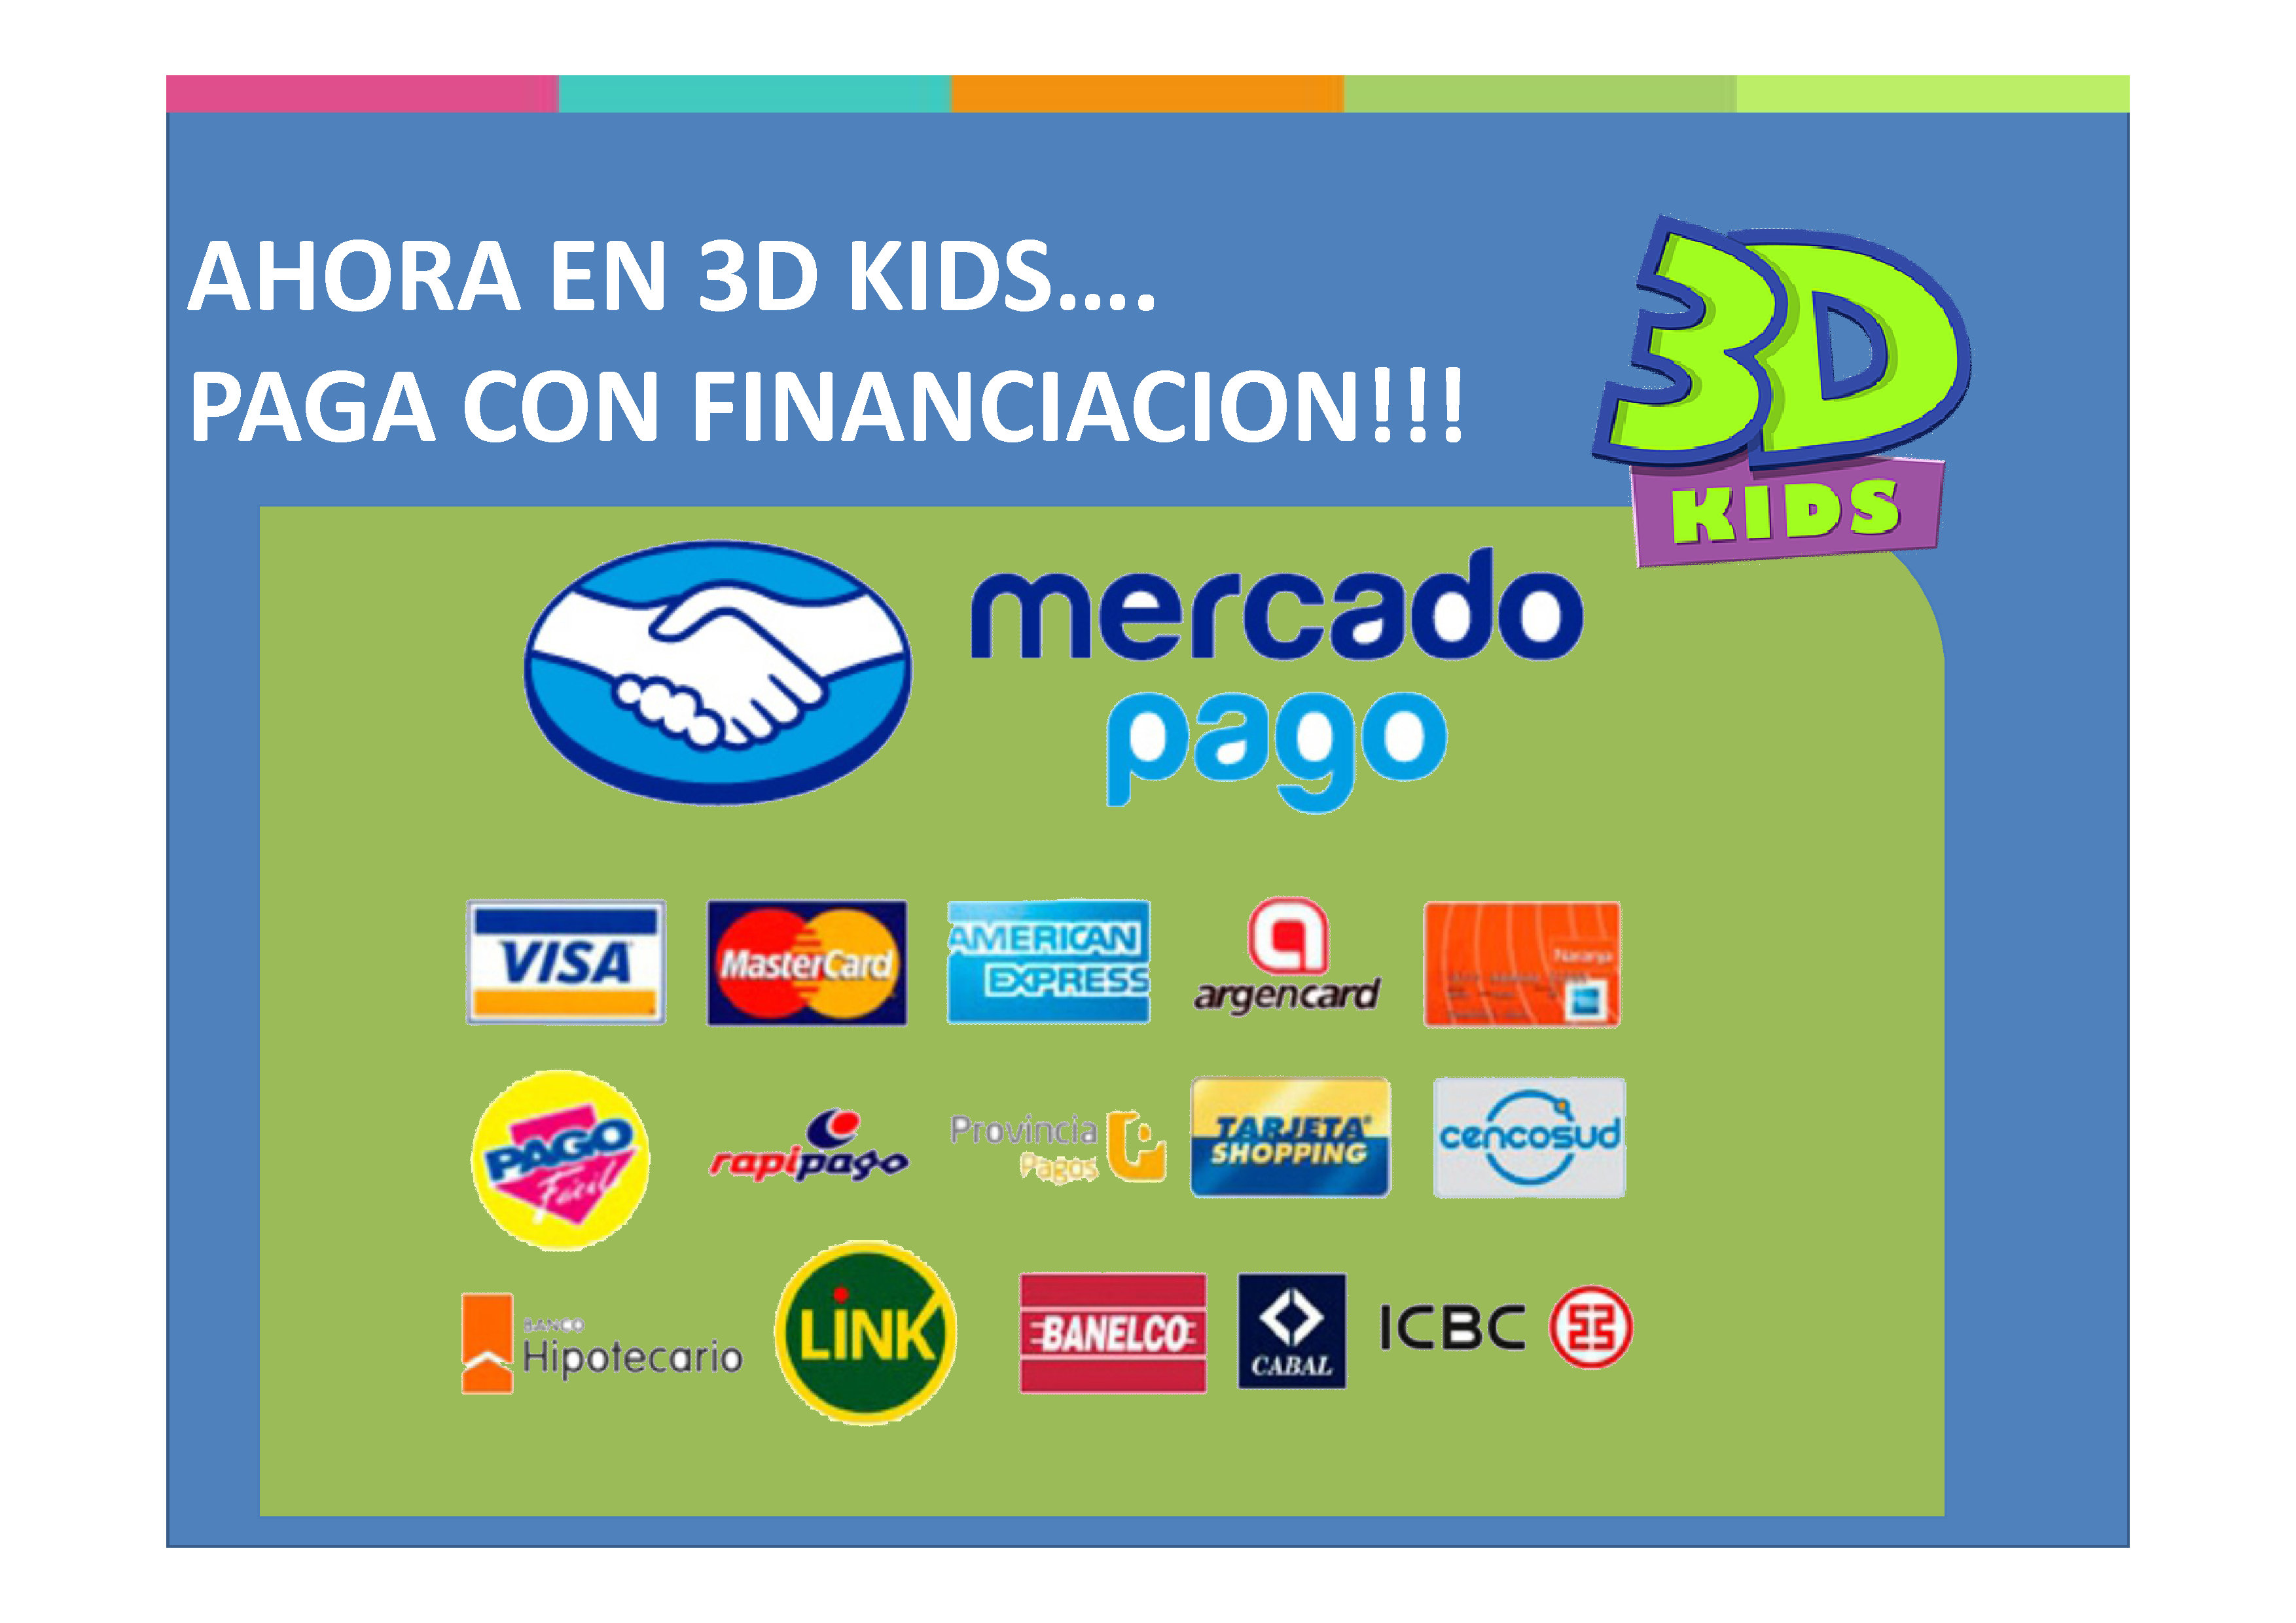 financiacion 3d kids